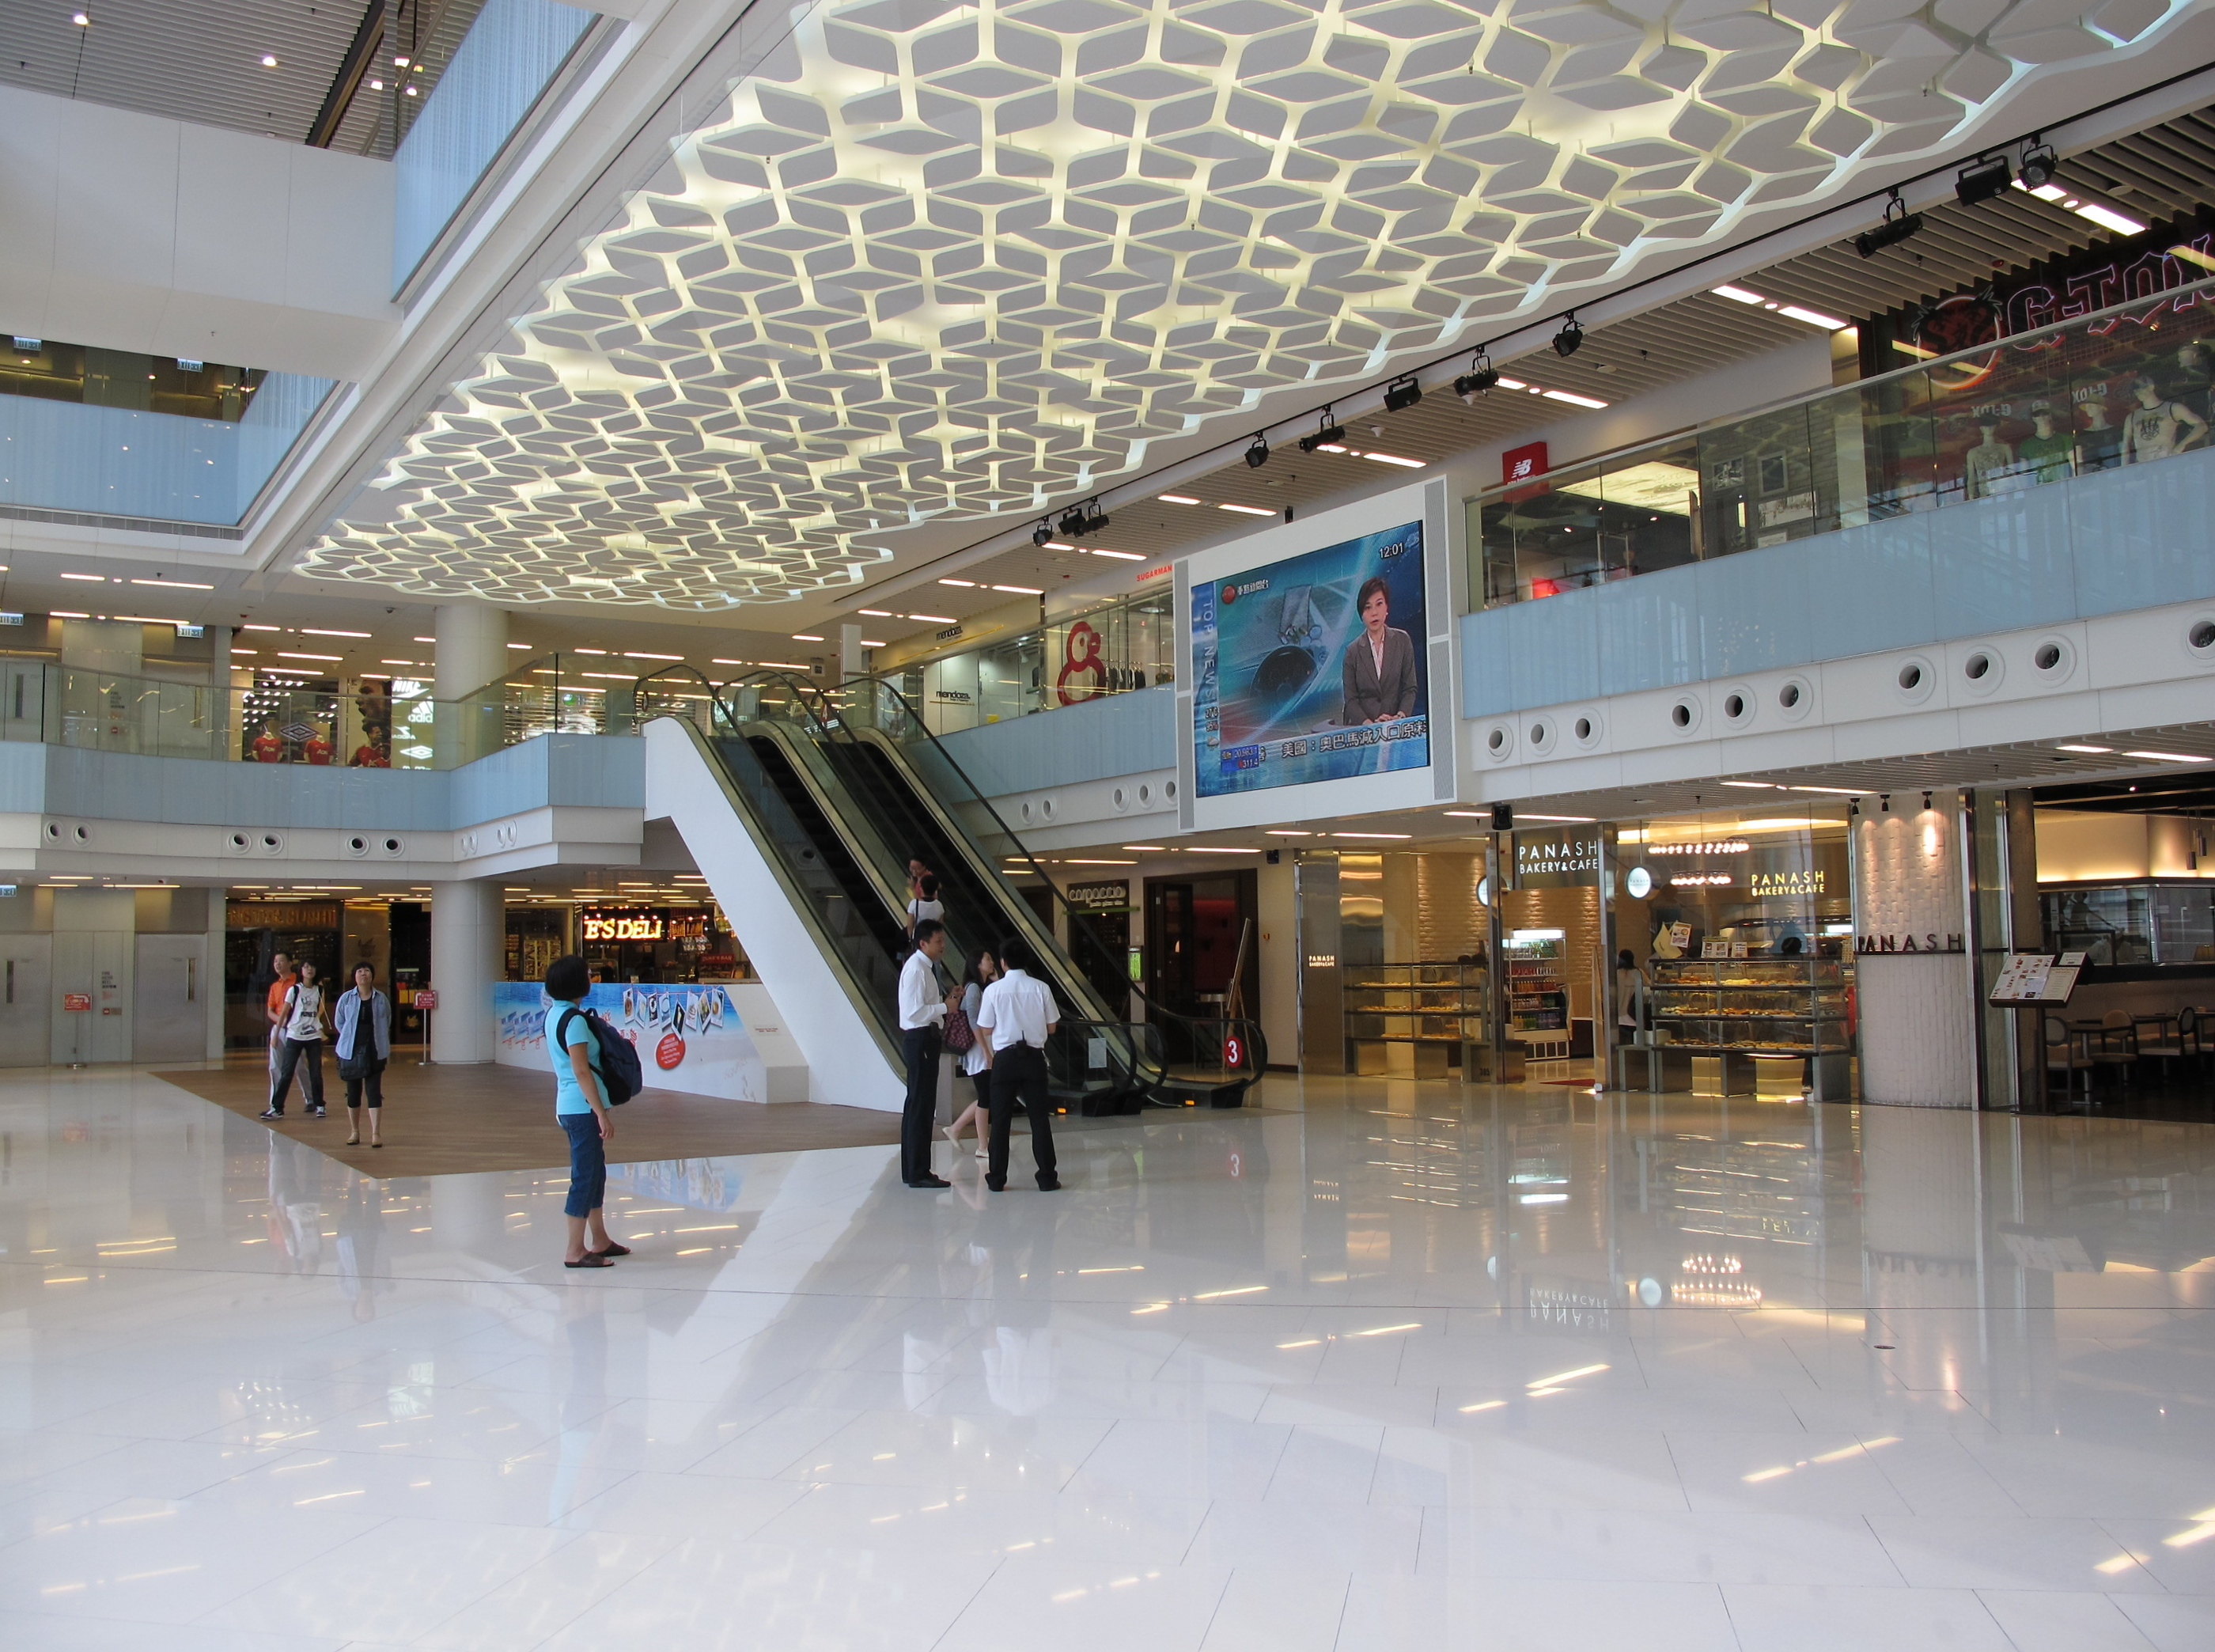 Ifc mall google retail mall pinterest for Hk architecture firm